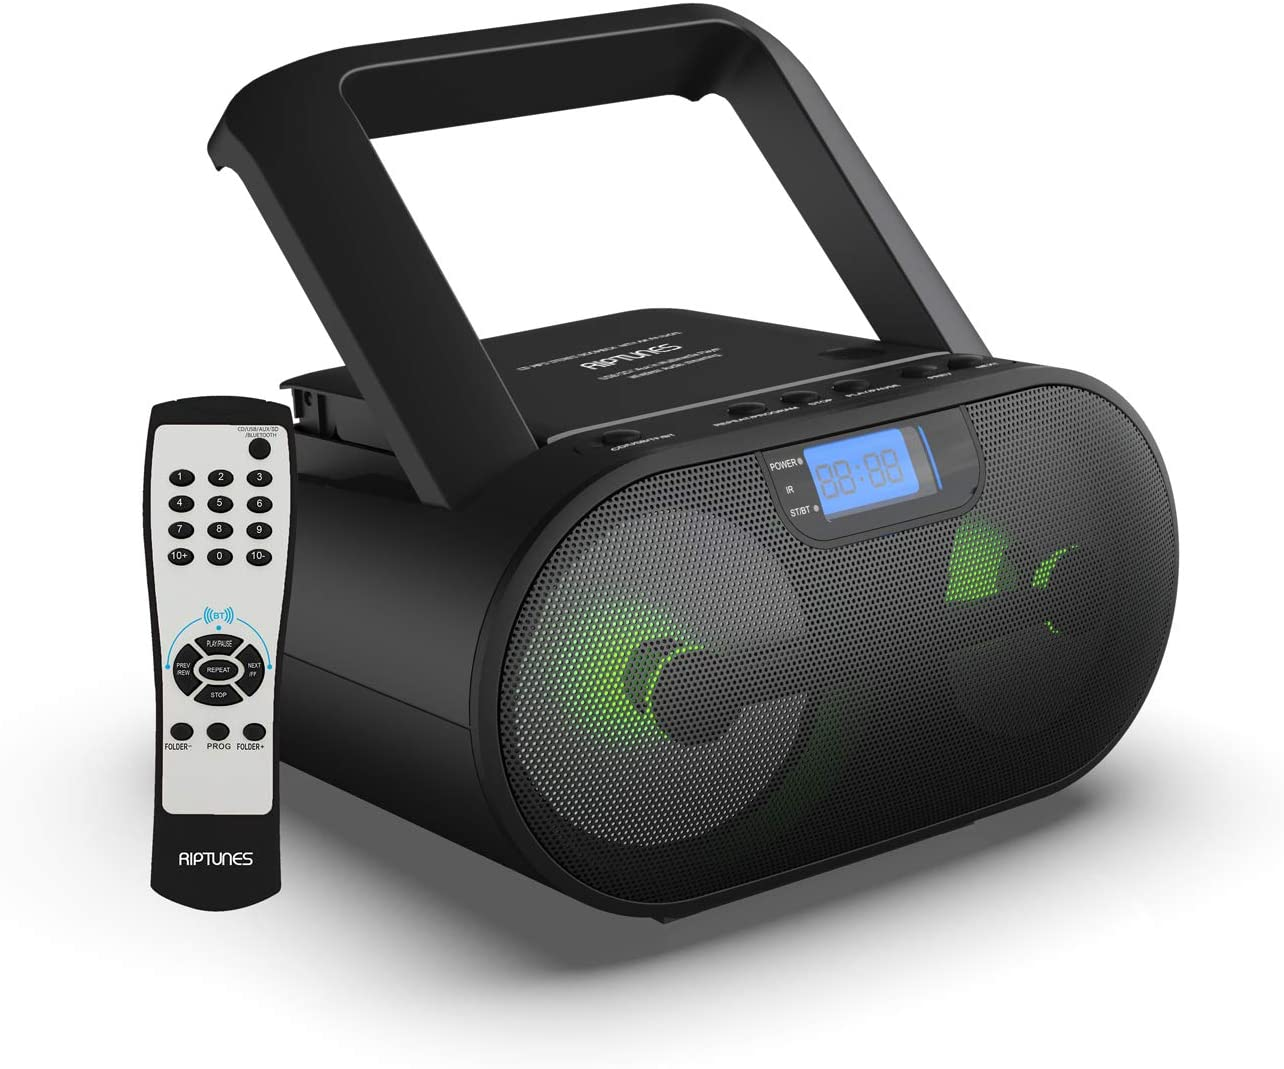 Riptunes CD Player Bluetooth Boombox AM/FM Portable Radio Digital LCD MP3/CD, USB, mSD, Aux, Headphone Jack Stereo Sound System with Enhanced Bass, LCD Display with Remote, Black